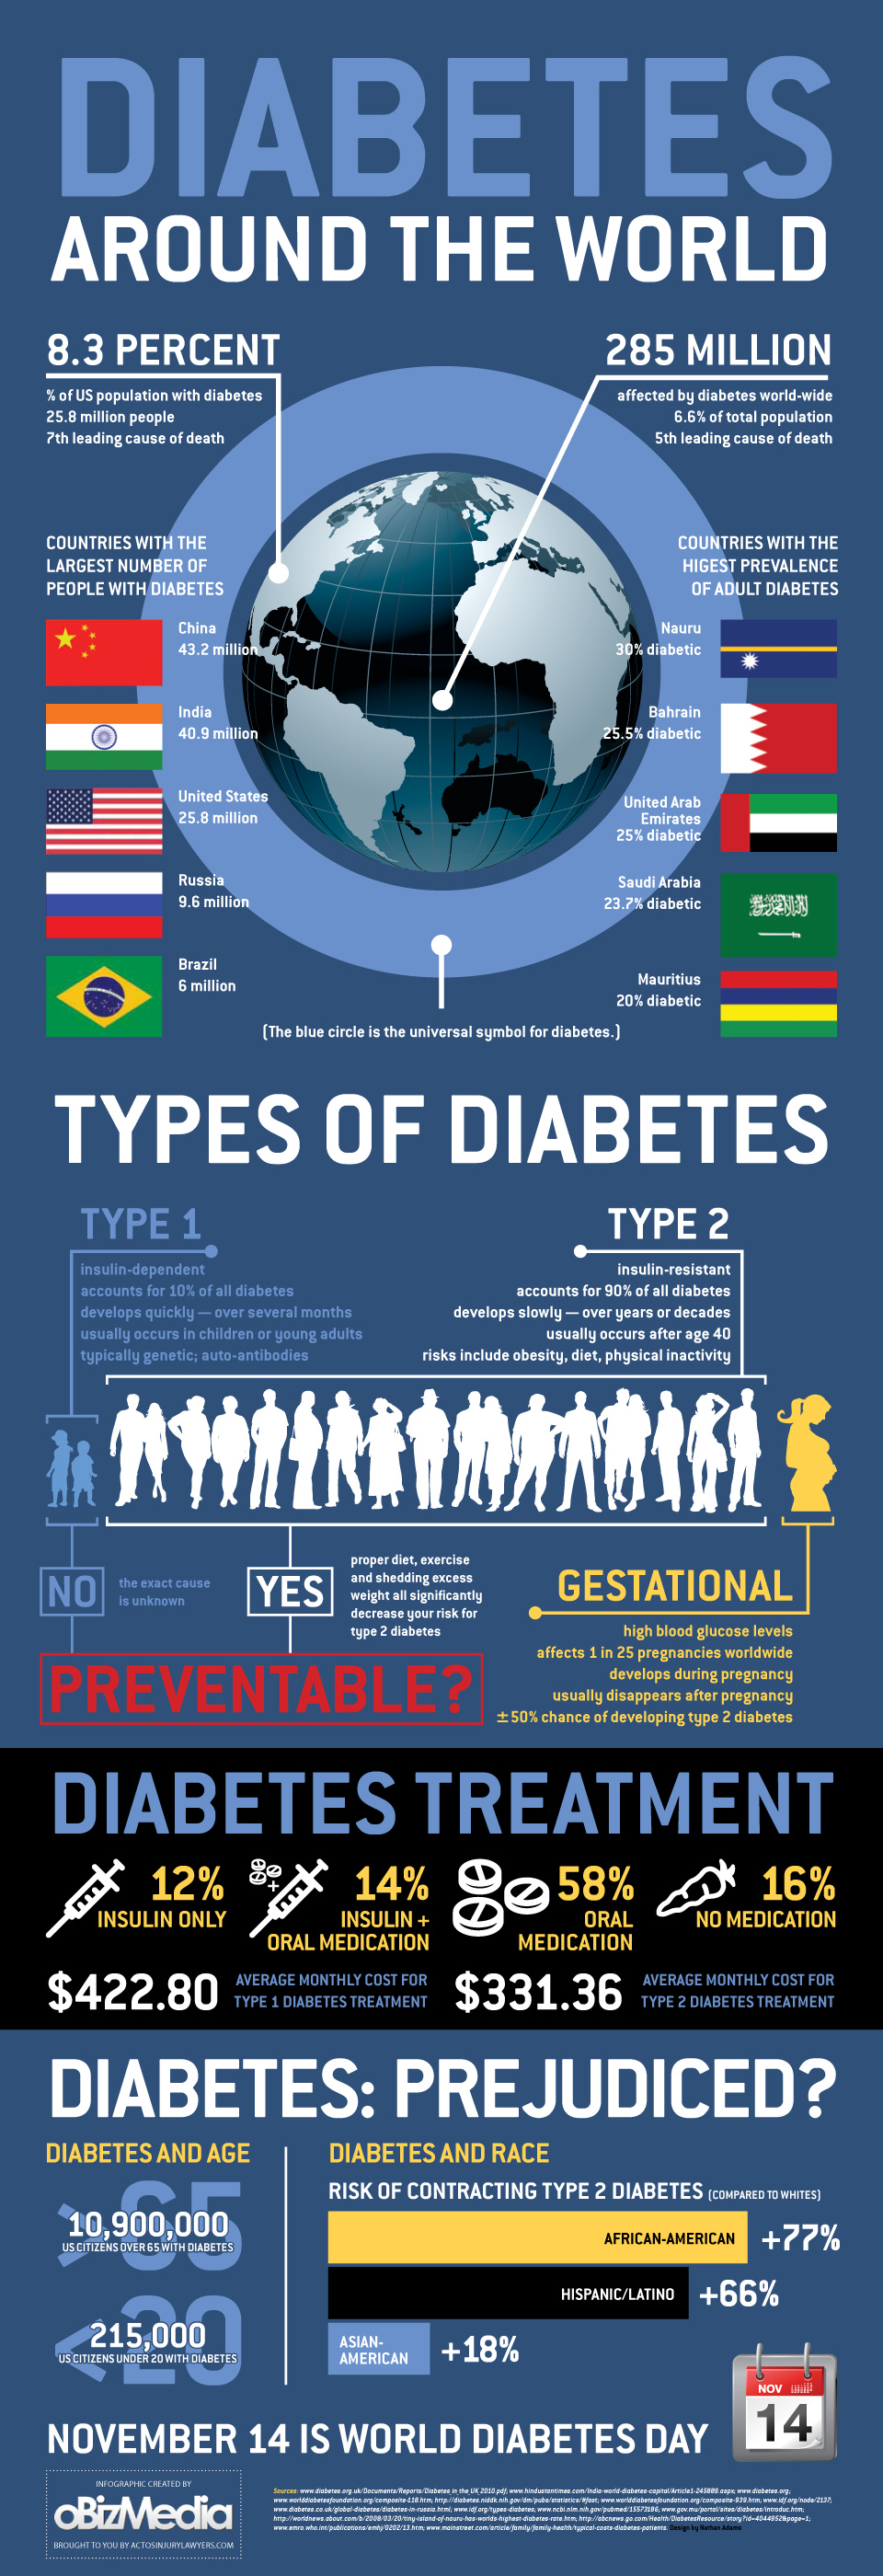 Worldwide Diabetes Statistics